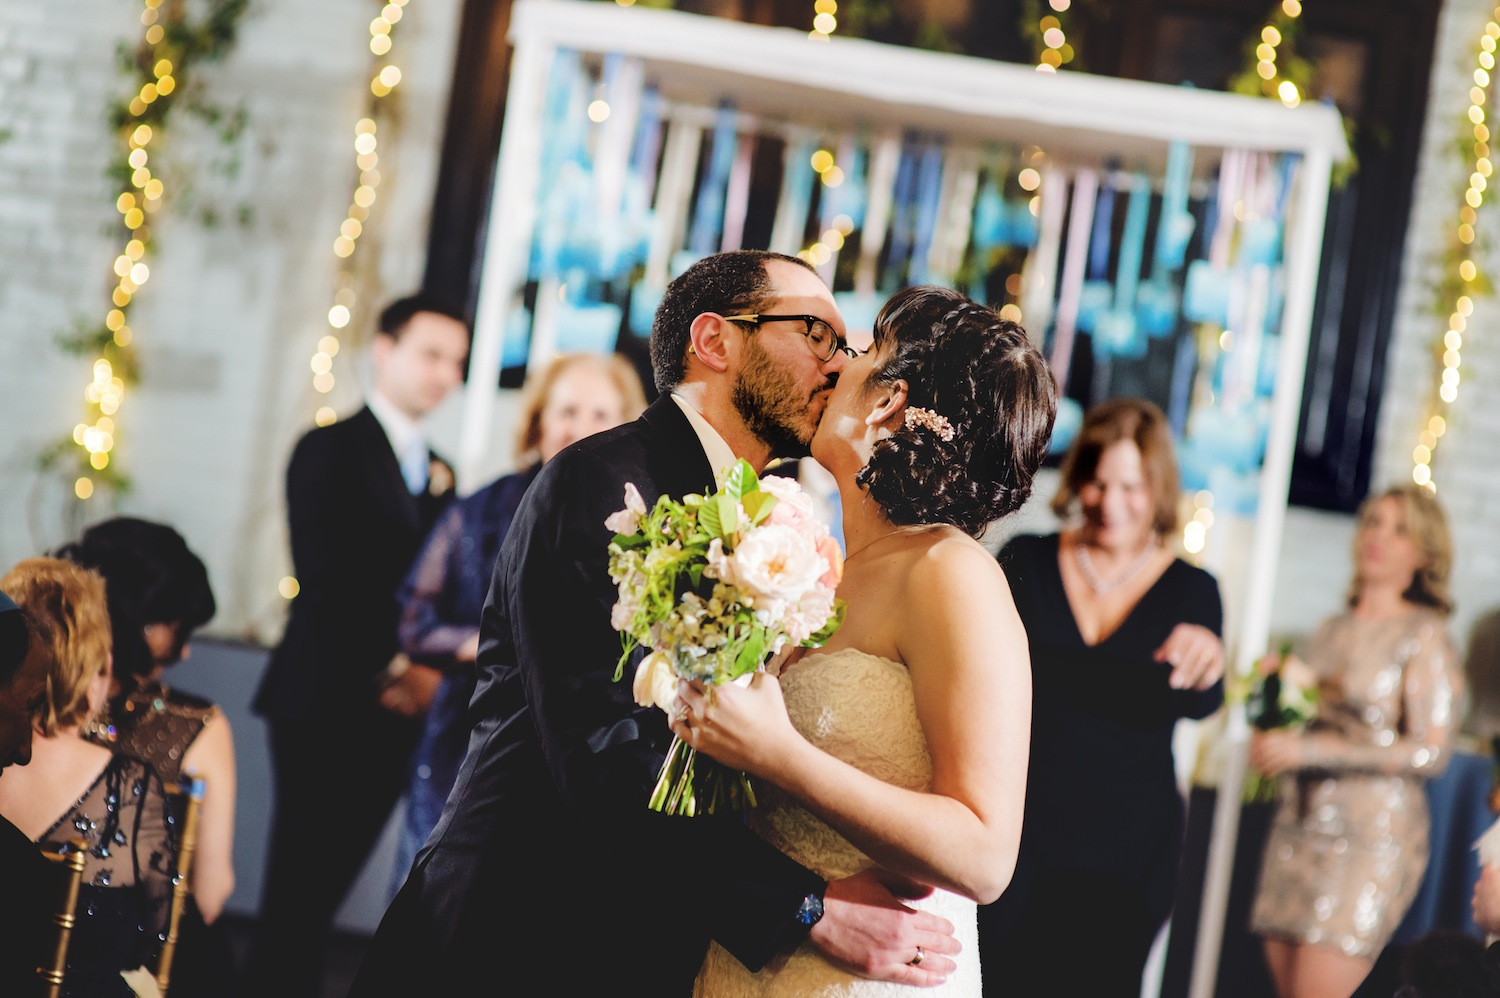 jonathan-and-jamie-kissing-in-aisle-in-wedding-photography-nyc